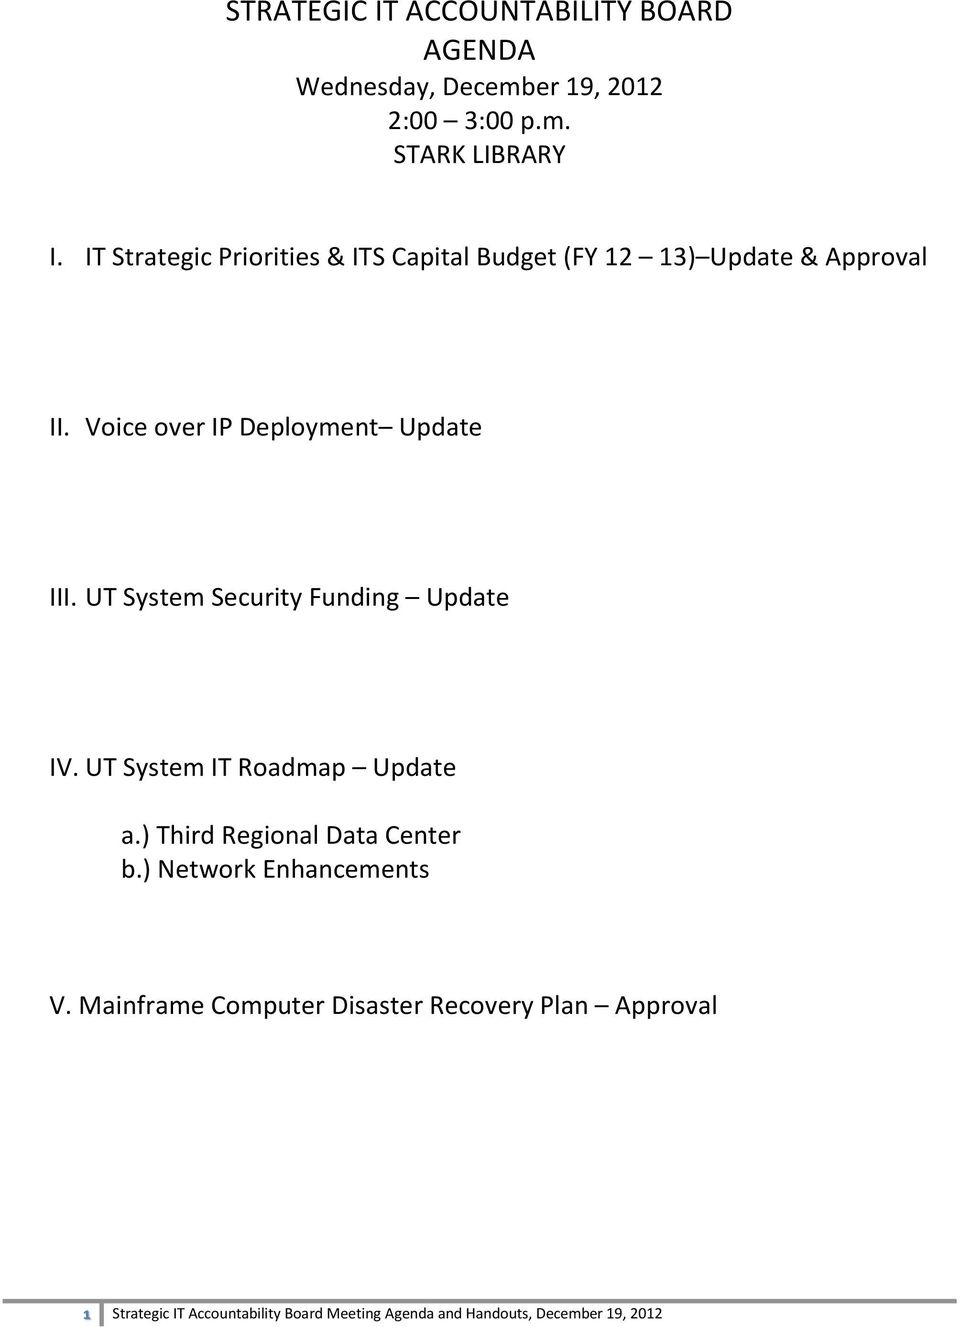 UT System Security Funding Update IV. UT System IT Roadmap Update a.) Third Regional Data Center b.